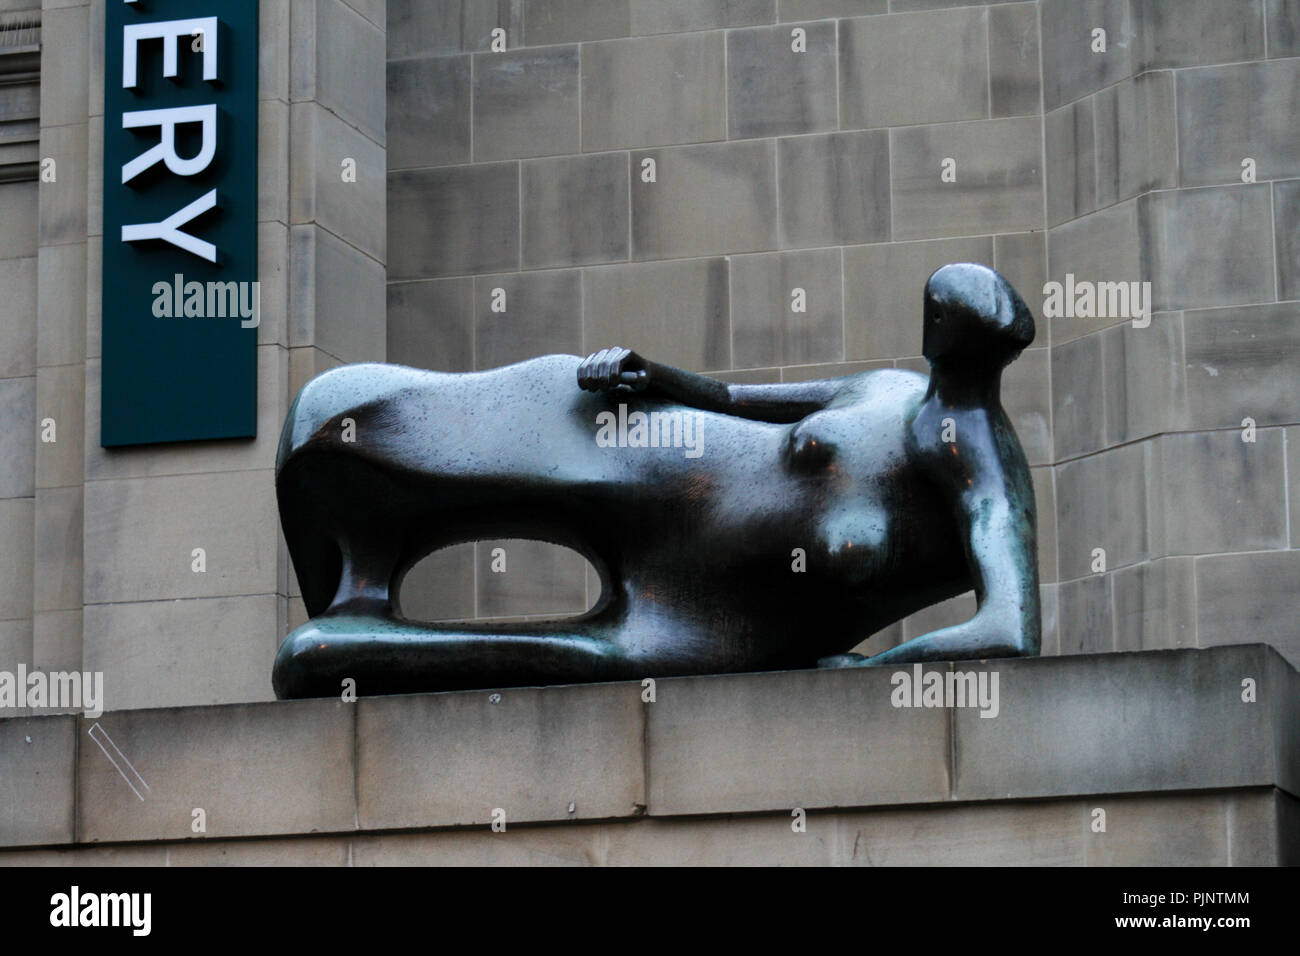 Leeds, UK. 16th June, 2012. Reclining Woman sculpture by Henry Moore at the entrance to Leeds City Art Gallery, Library & Henry Moore Institute.Leeds is the largest city in the northern English county of Yorkshire. It has one of the supreme diverse economies of UK's main employment hearts and has seen the fastest rate of private-sector jobs development of any UK city. It also has the highest ratio of private to public sector jobs of UK's Core Cities. Credit: Rahman Hassani/SOPA Images/ZUMA Wire/Alamy Live News Stock Photo